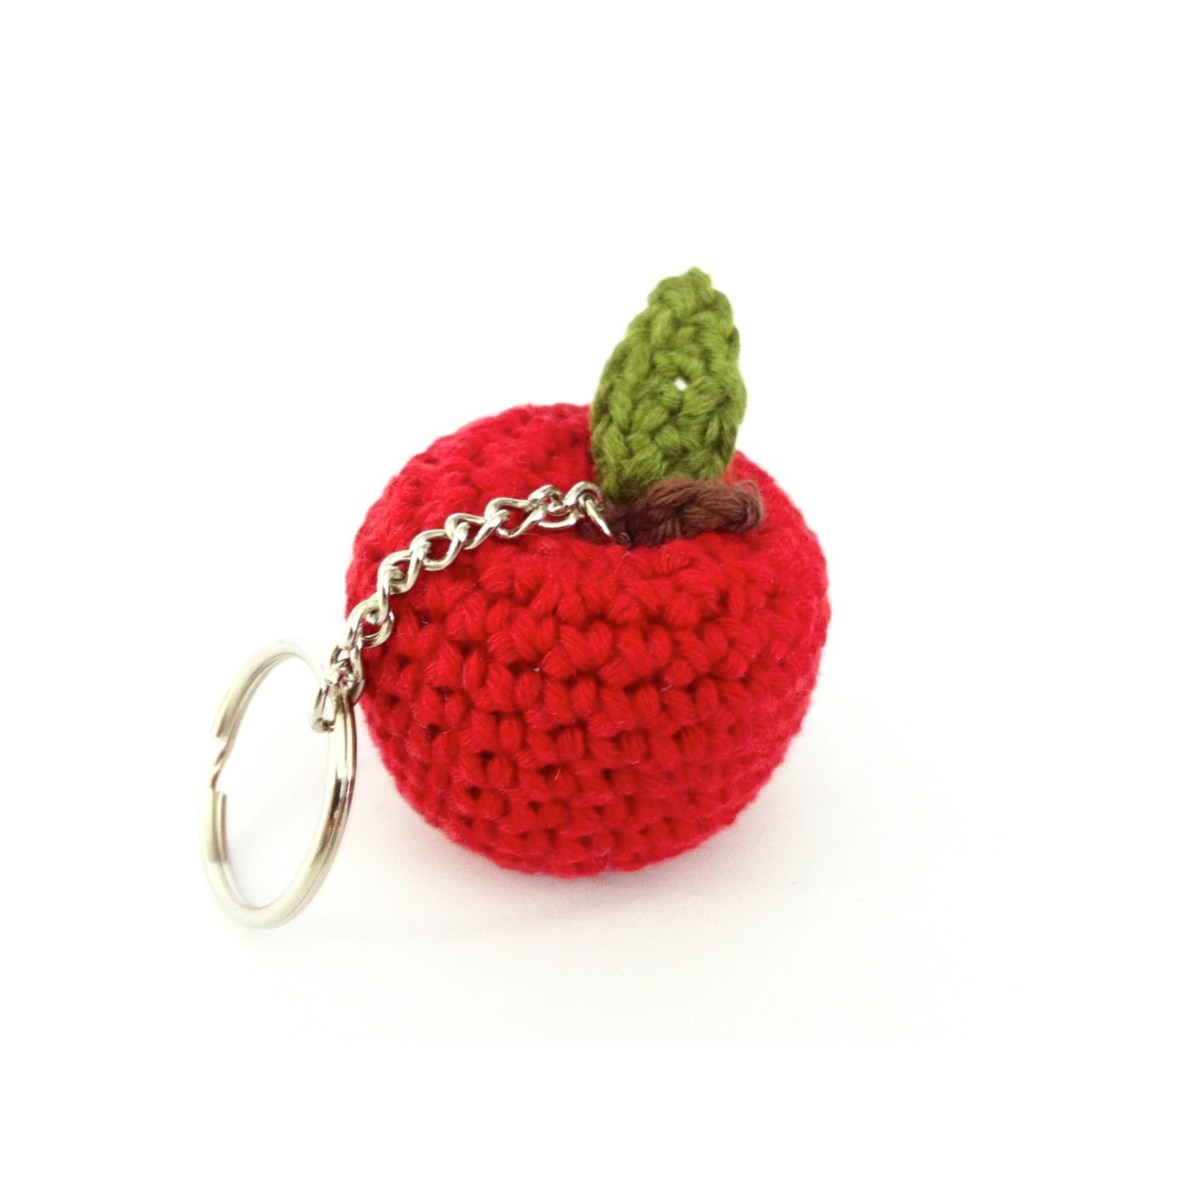 Eco-friendly Handmade Apple Key Fob